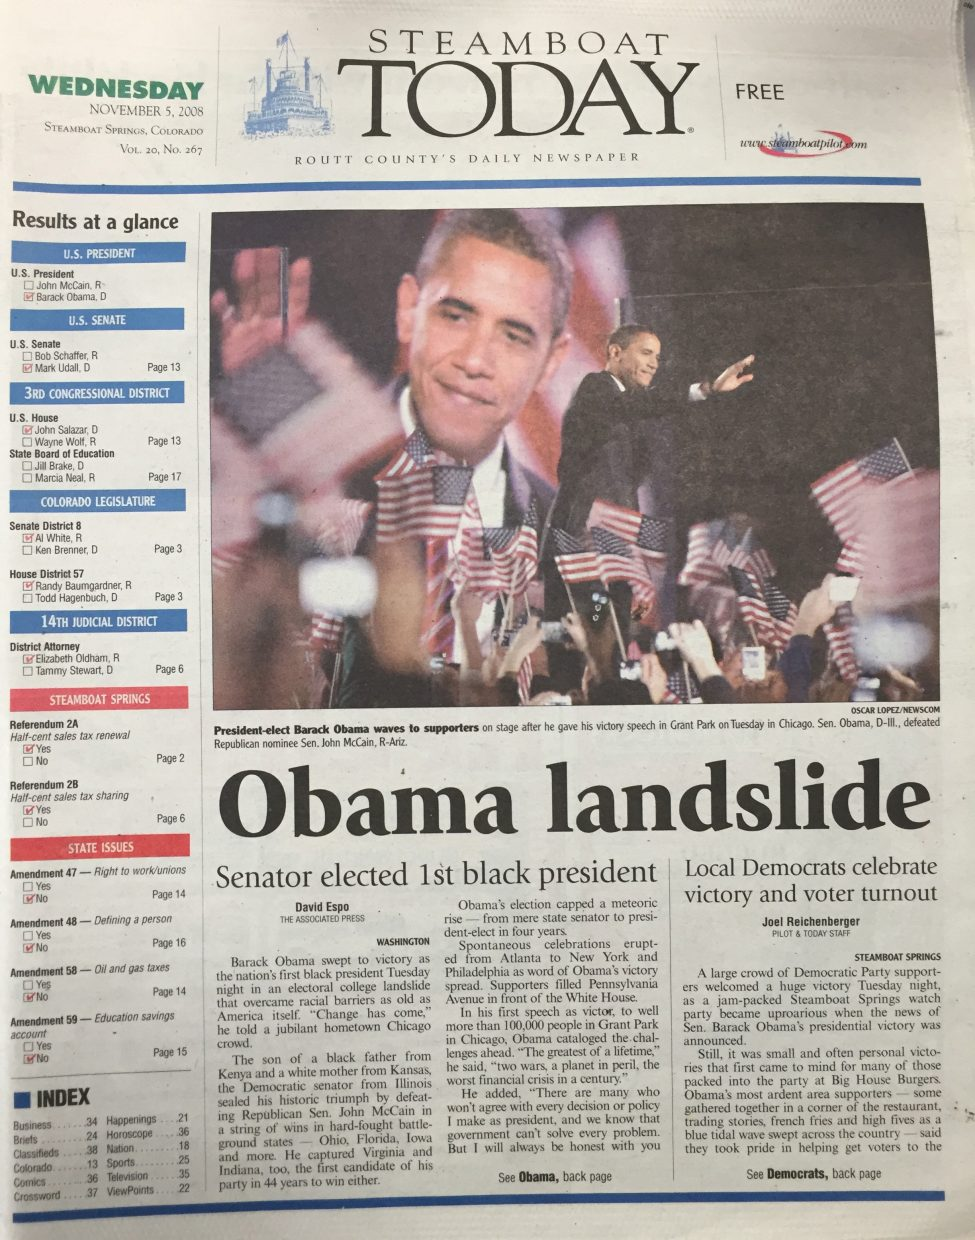 Front page of 2008 Steamboat Today